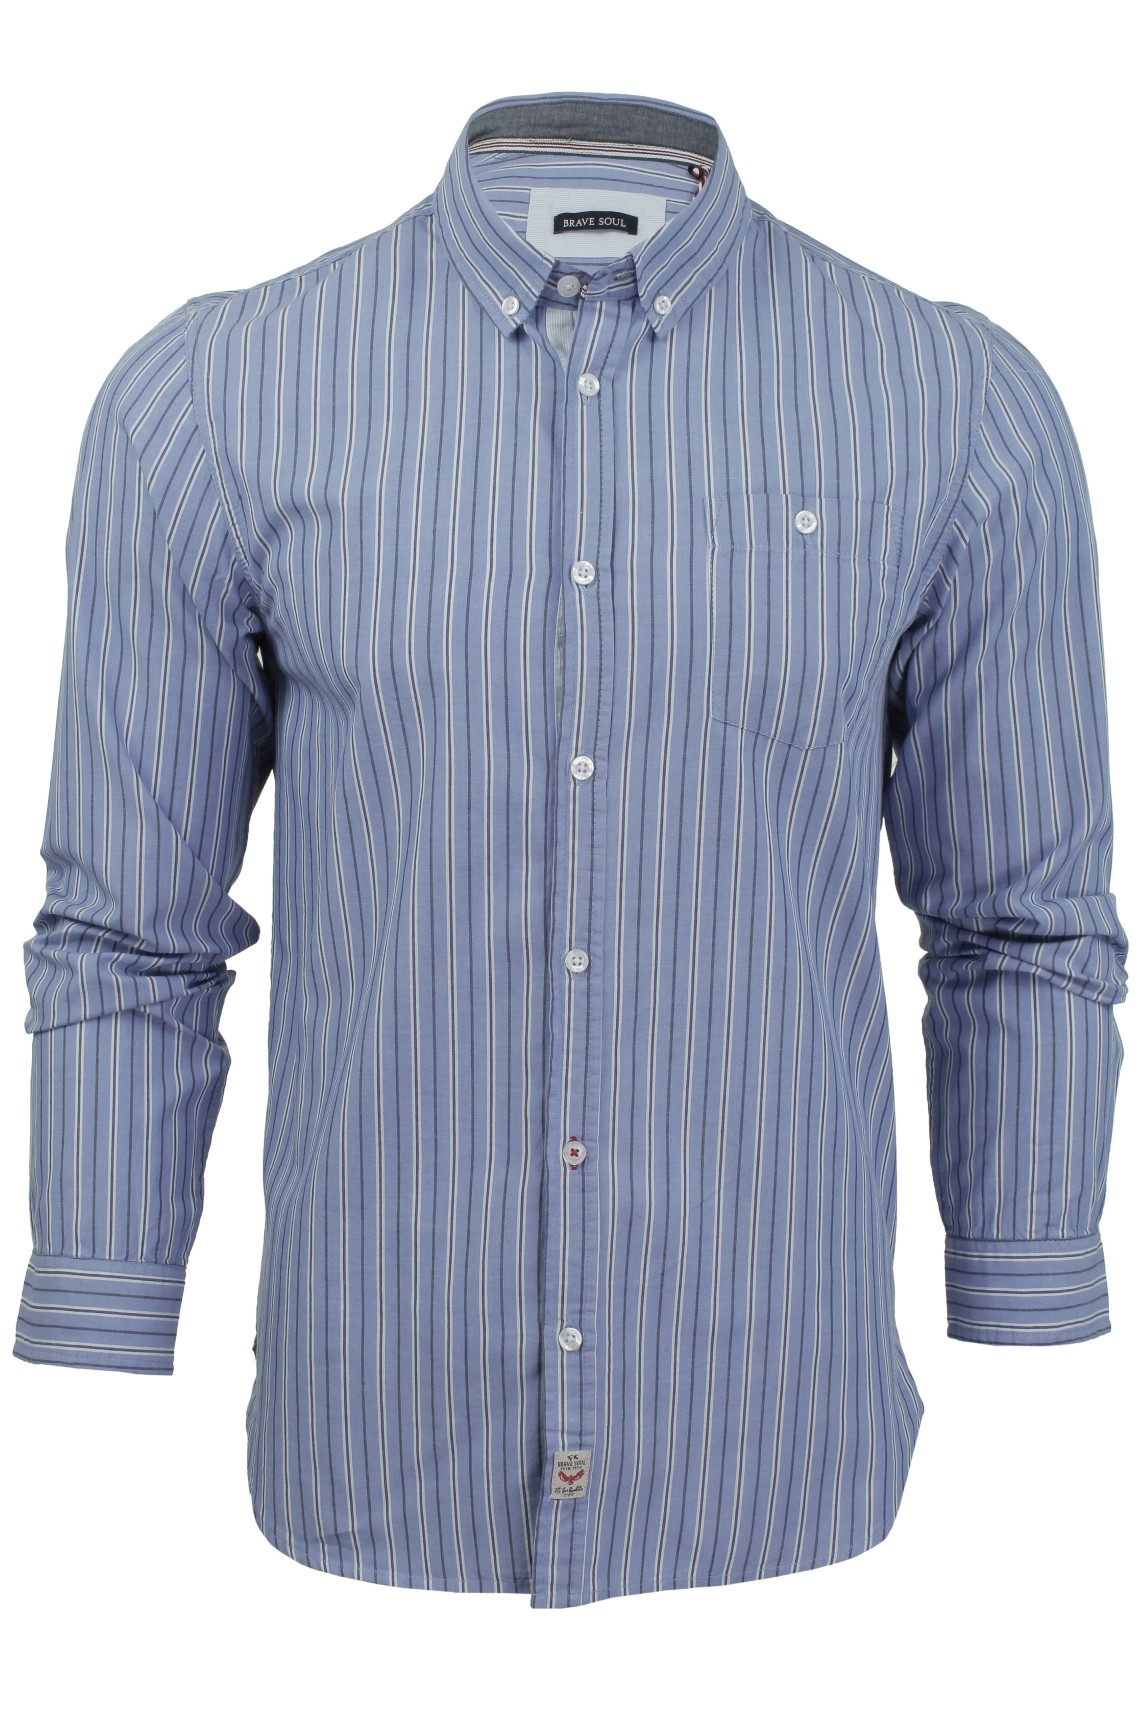 Mens Long Sleeved Shirt By Brave Soul Striped With